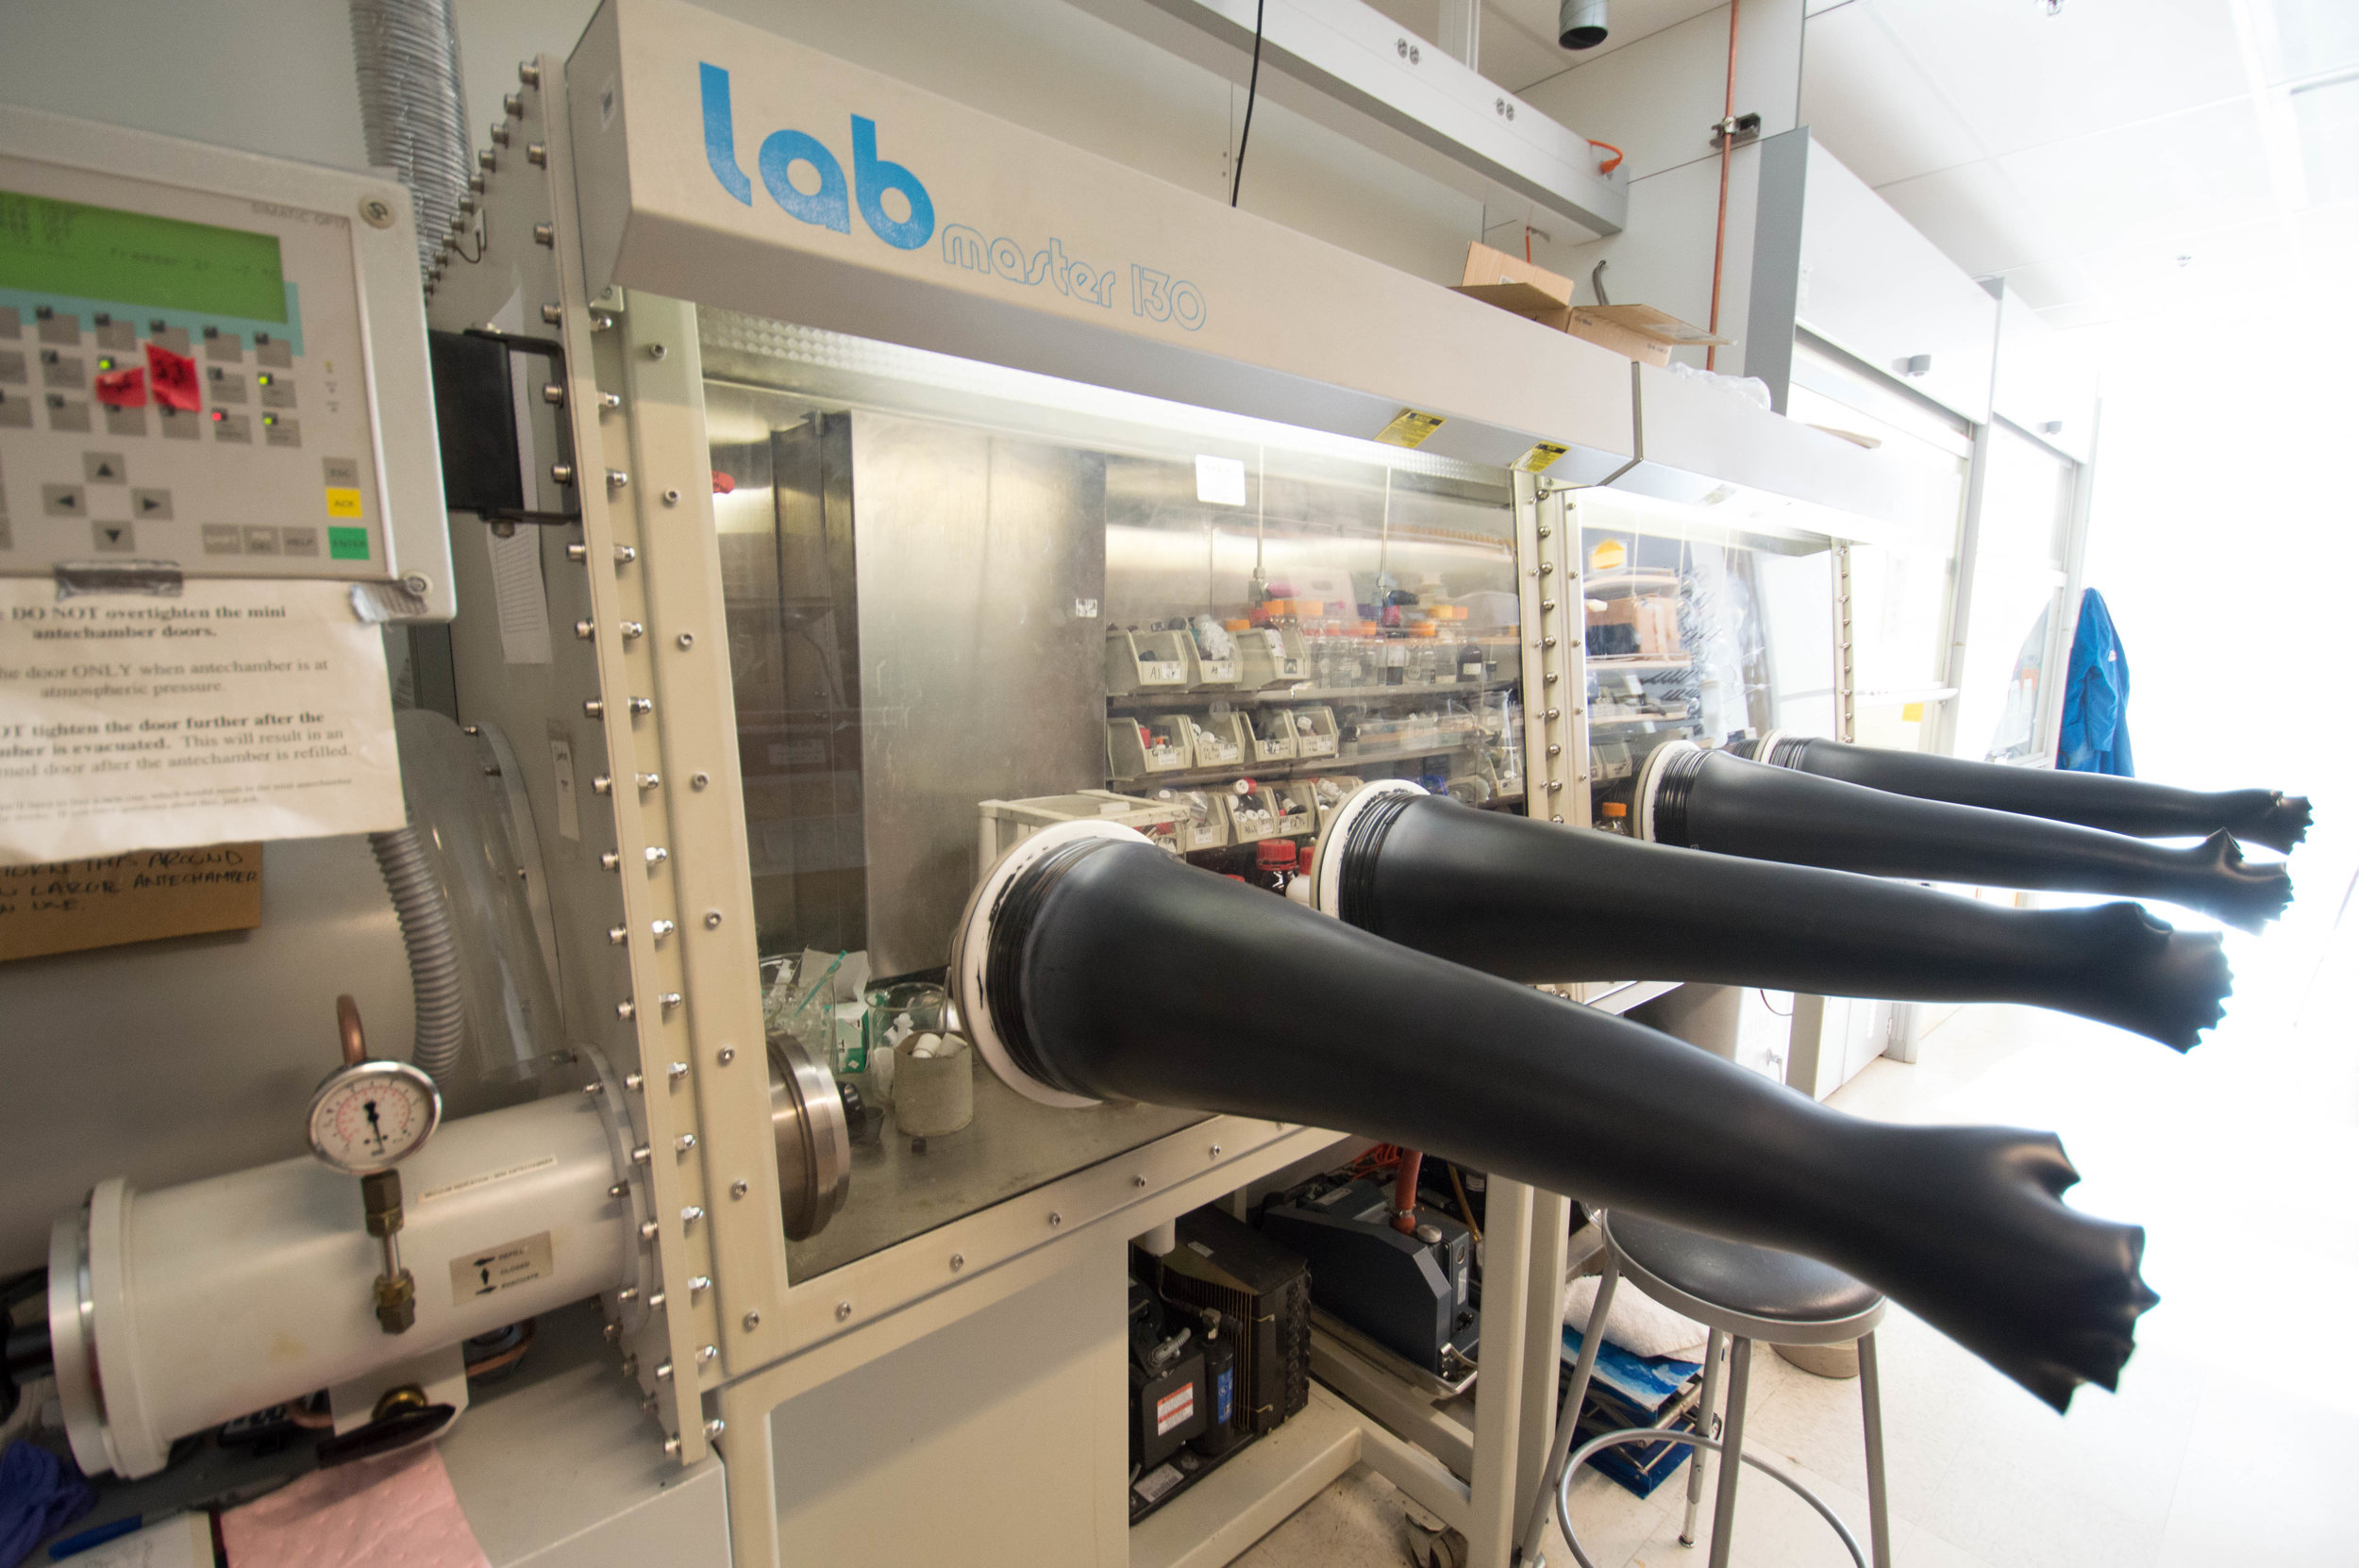 The group has a two-section glove box for working with air or water sensitive reagents